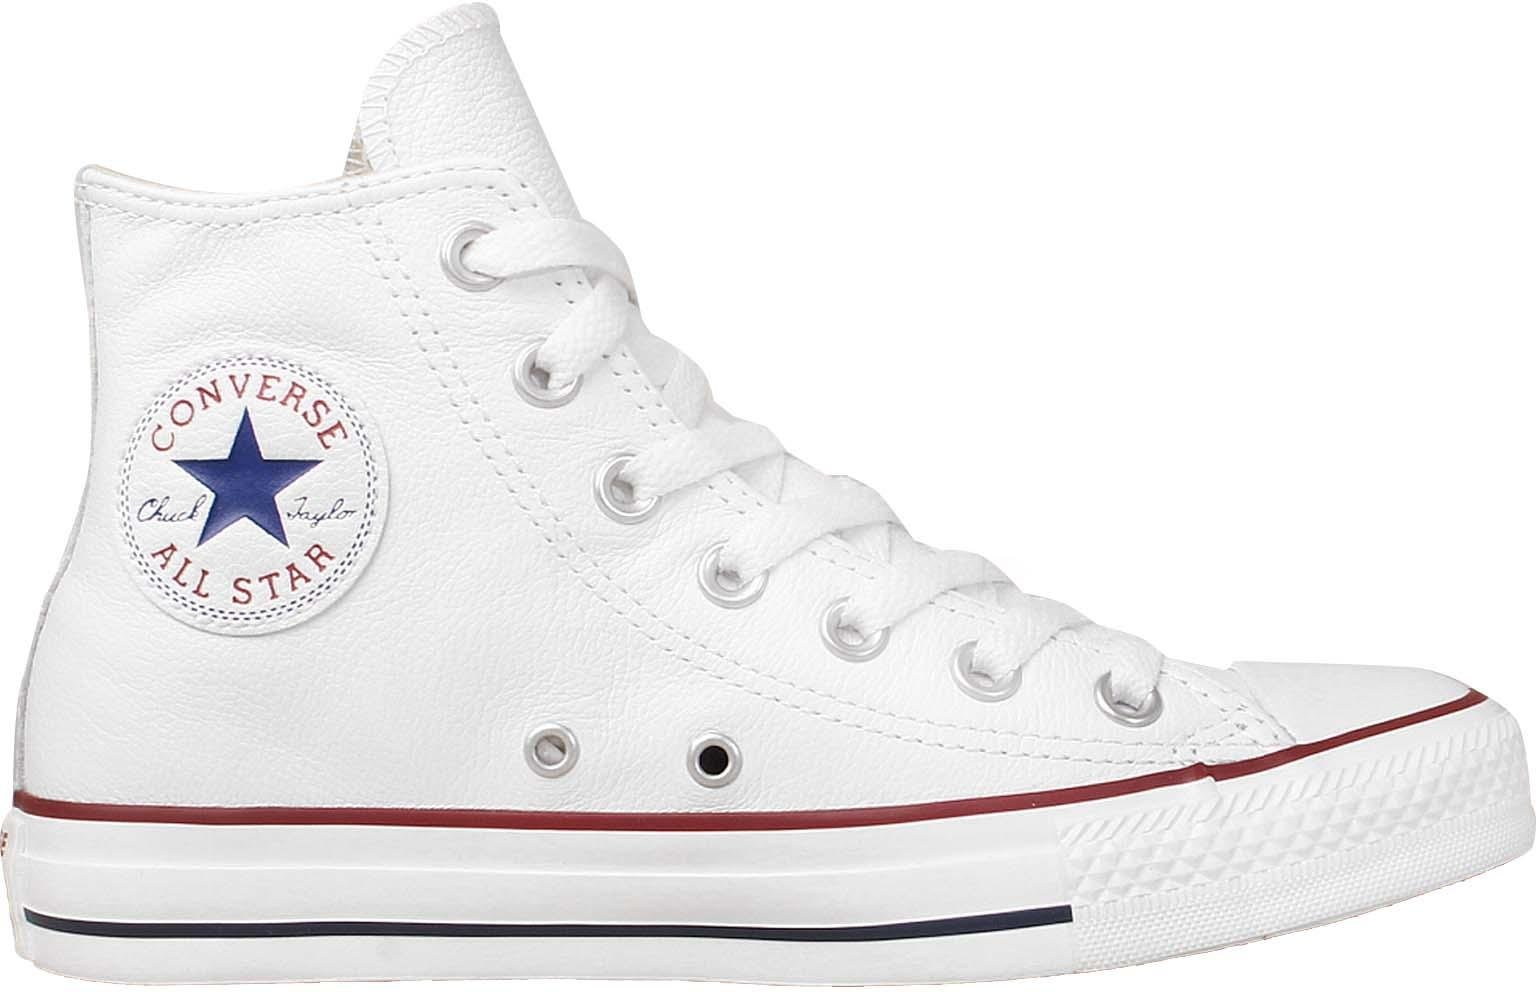 Shoes Converse chuck taylor as high leather